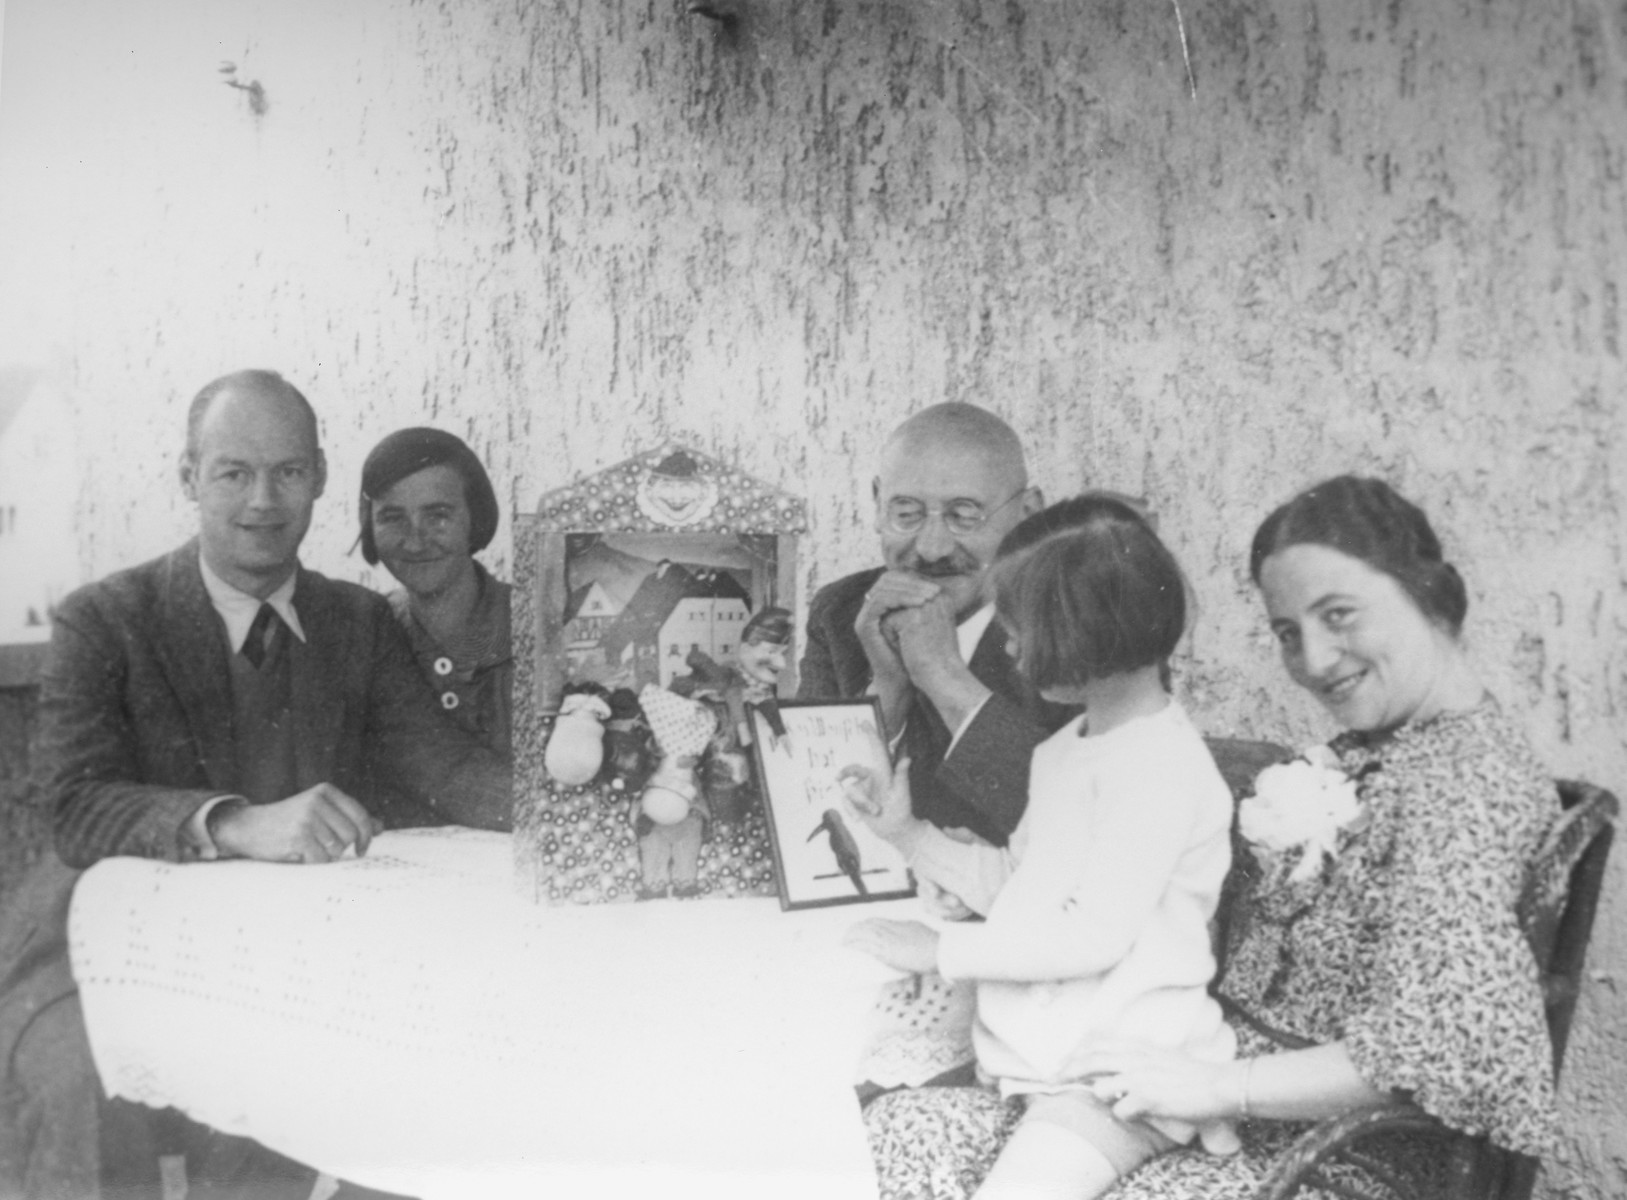 A Jewish family gathers around a table with a Punch and Judy puppet theater in Kassel, Germany.  Pictured from left to right are: Hans, Trudi, Julius, Dorrith and Alice Oppenheim.